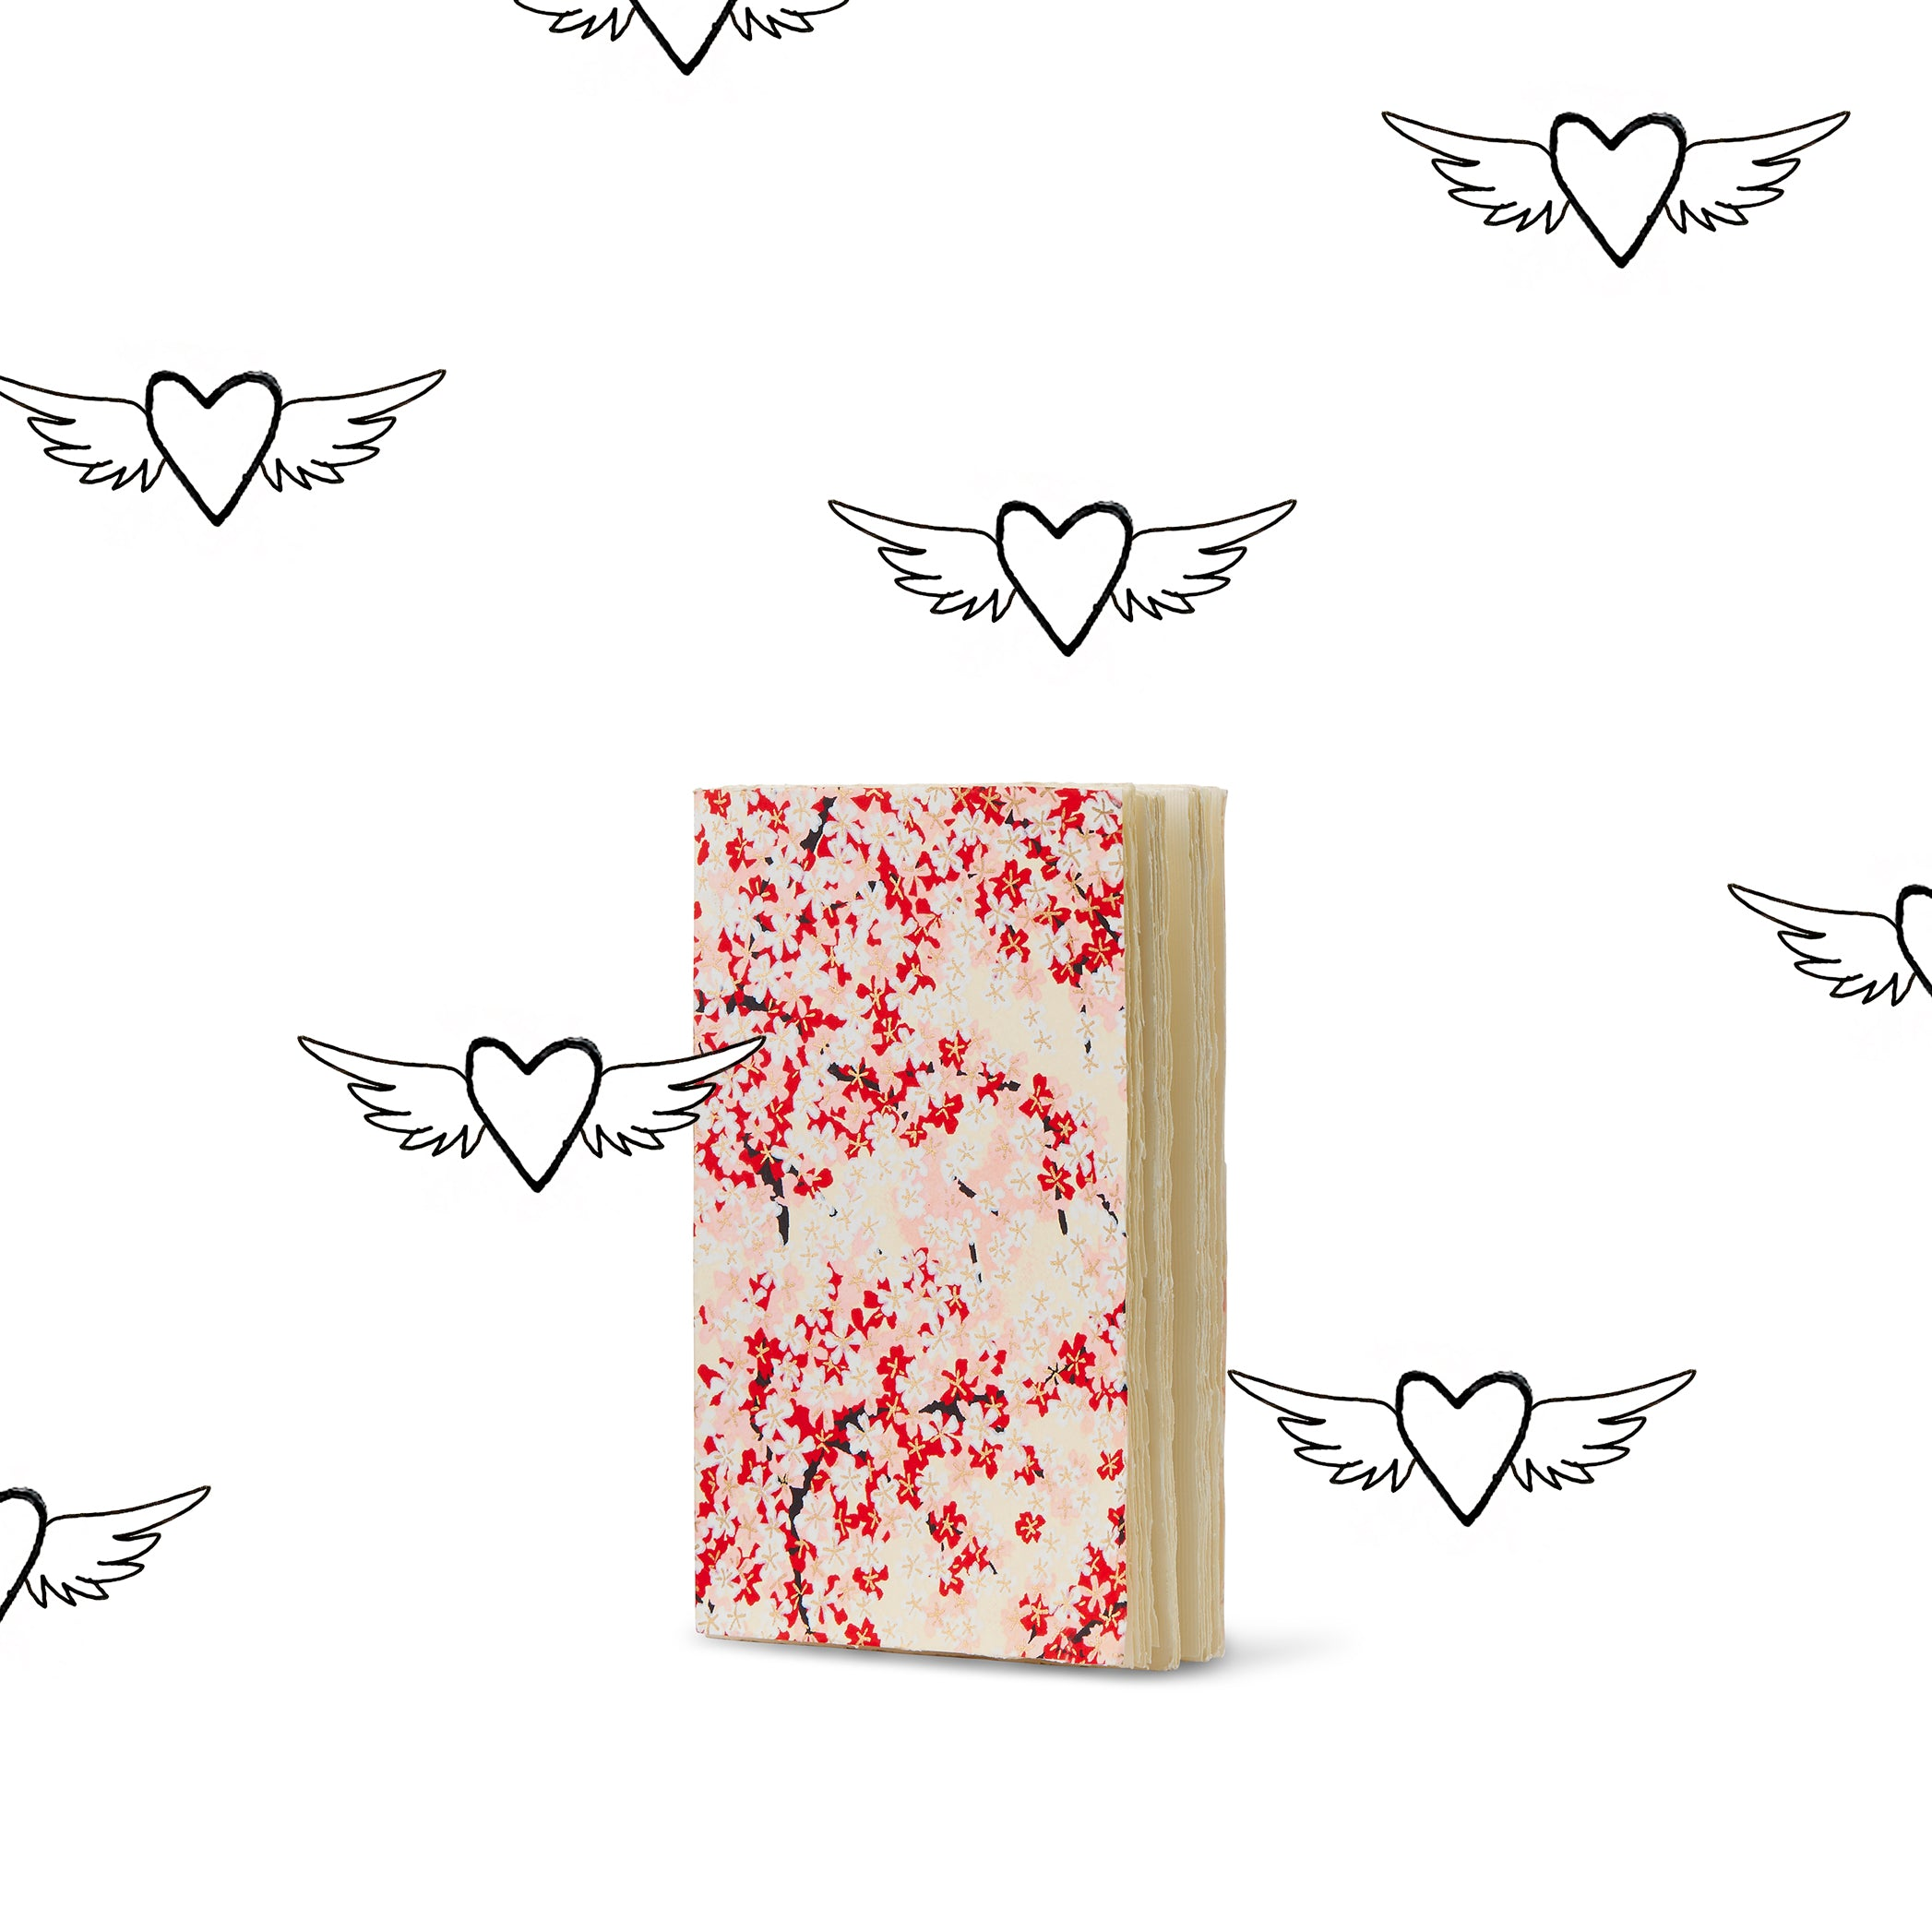 Handprinted Japanese Chiyogami Covered Small Sketchbook, Cherry Blossom